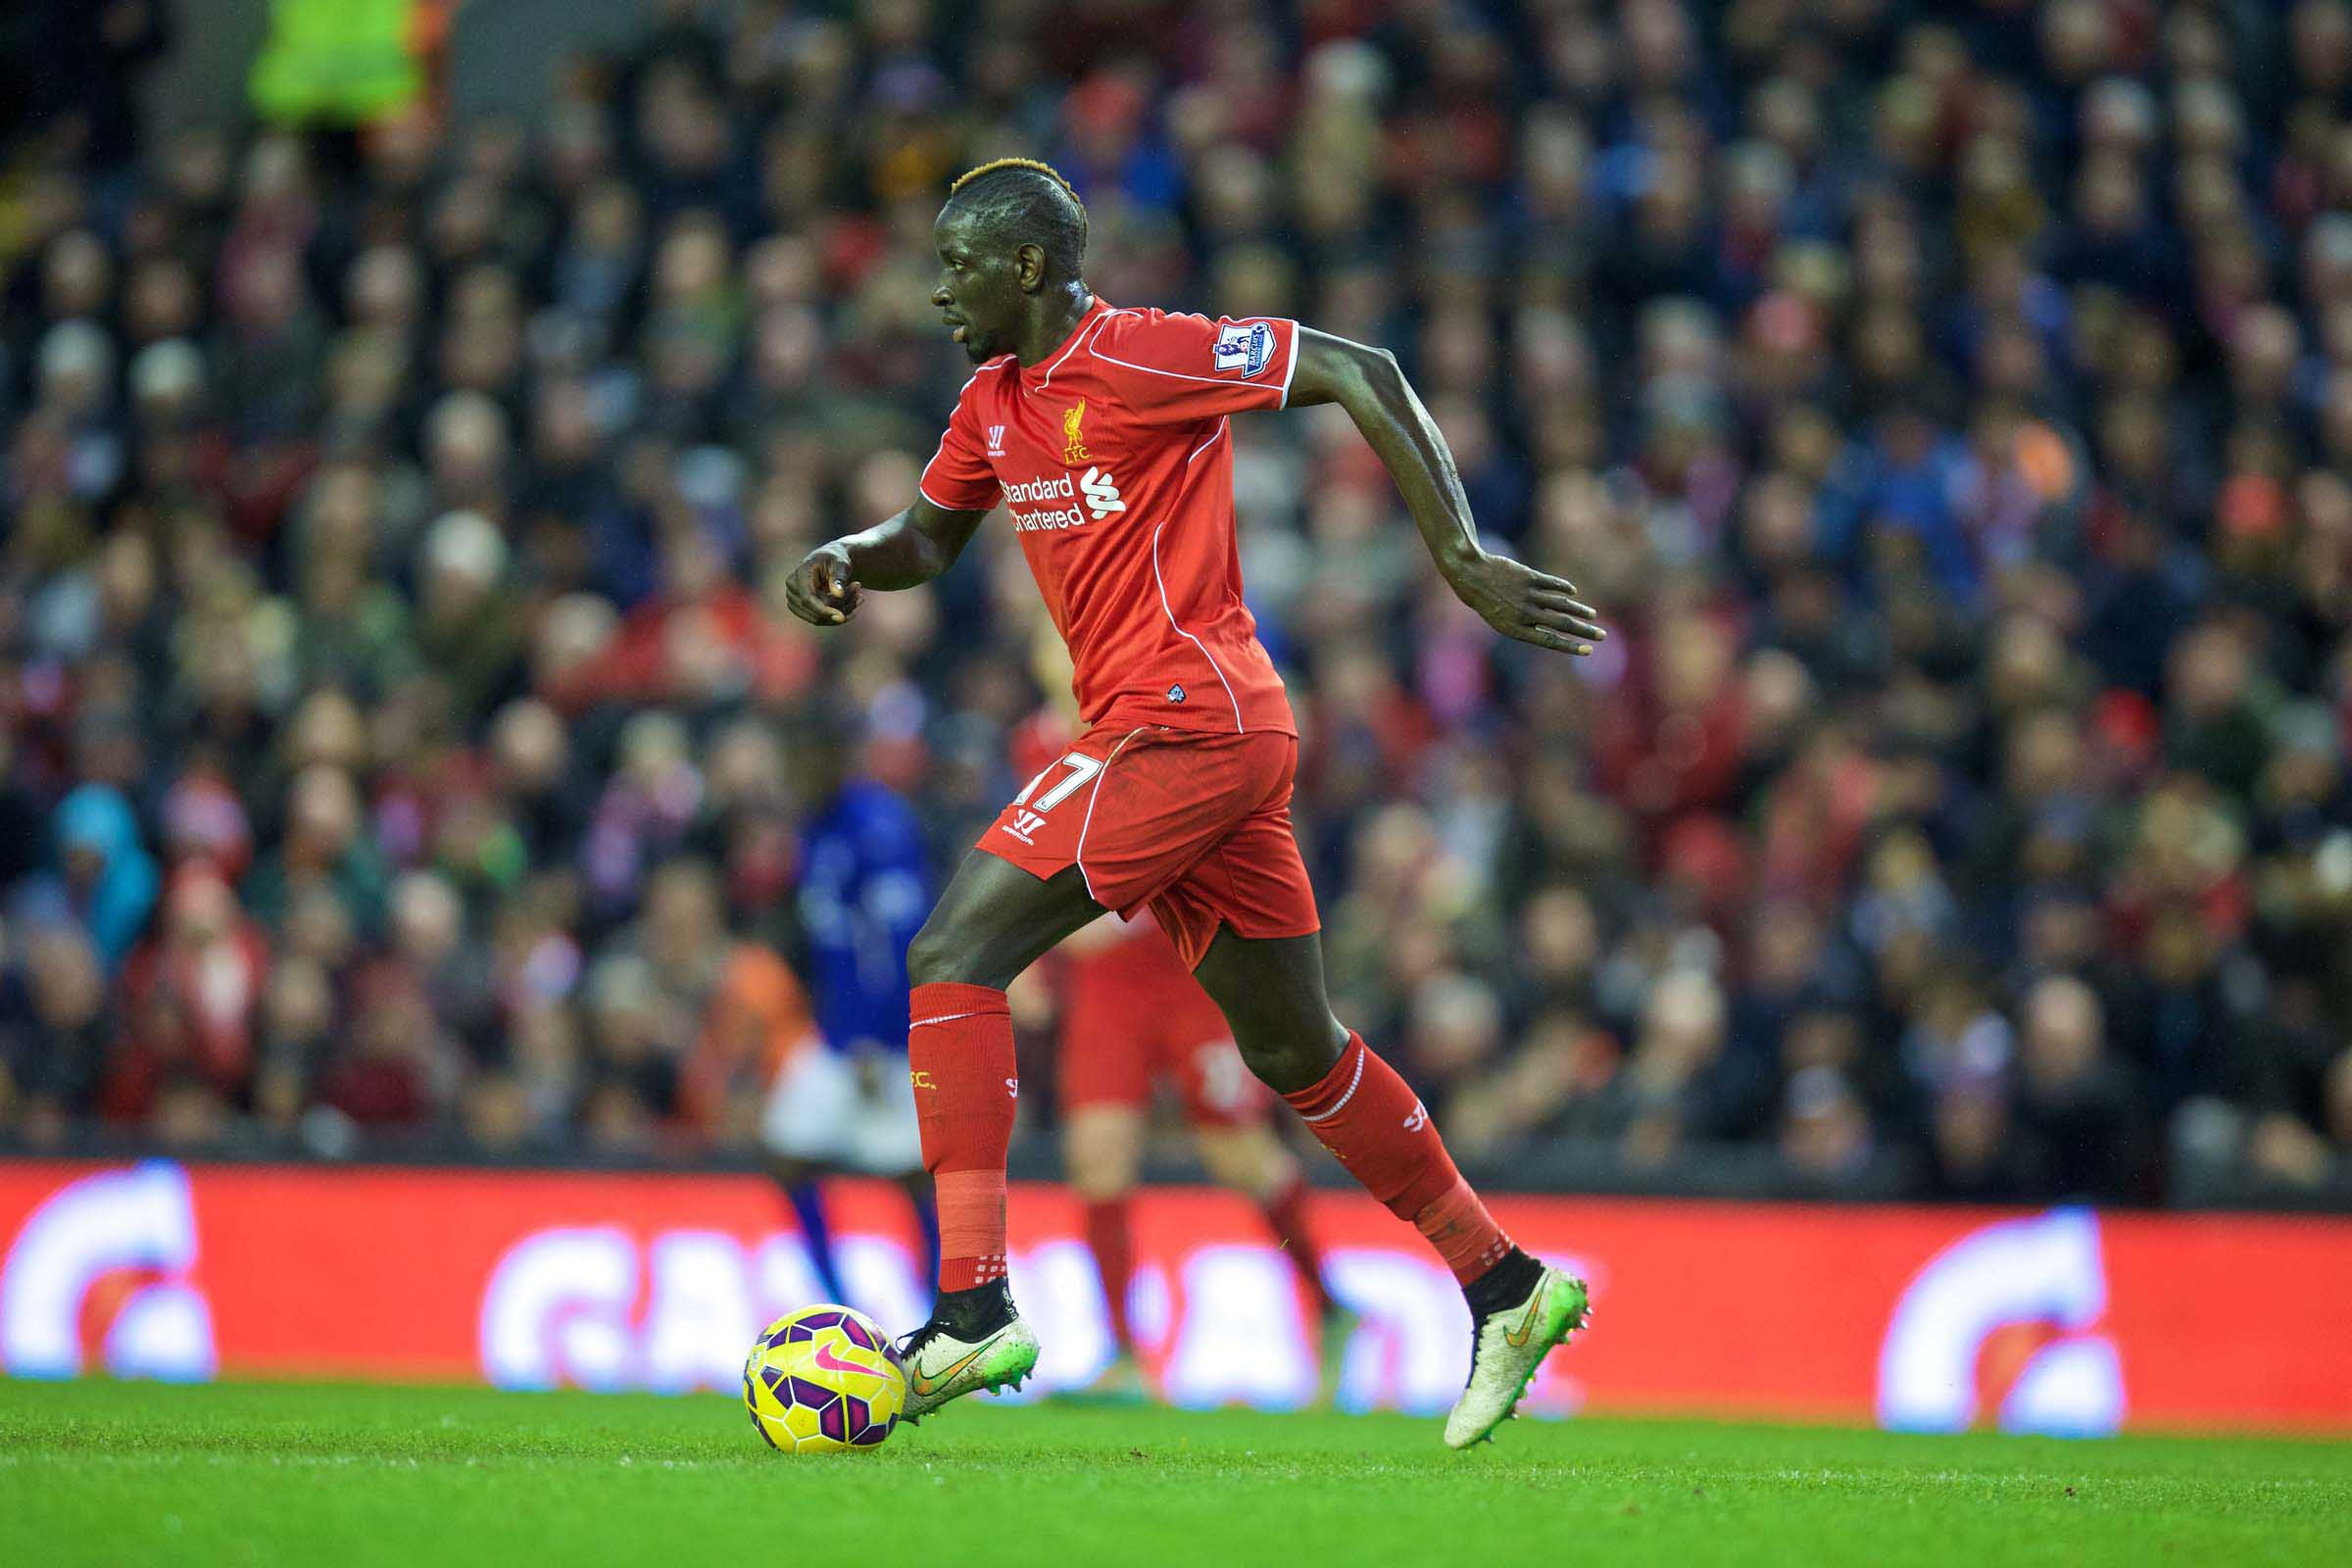 MAMADOU SAKHO: WHAT'S THE PROBLEM?